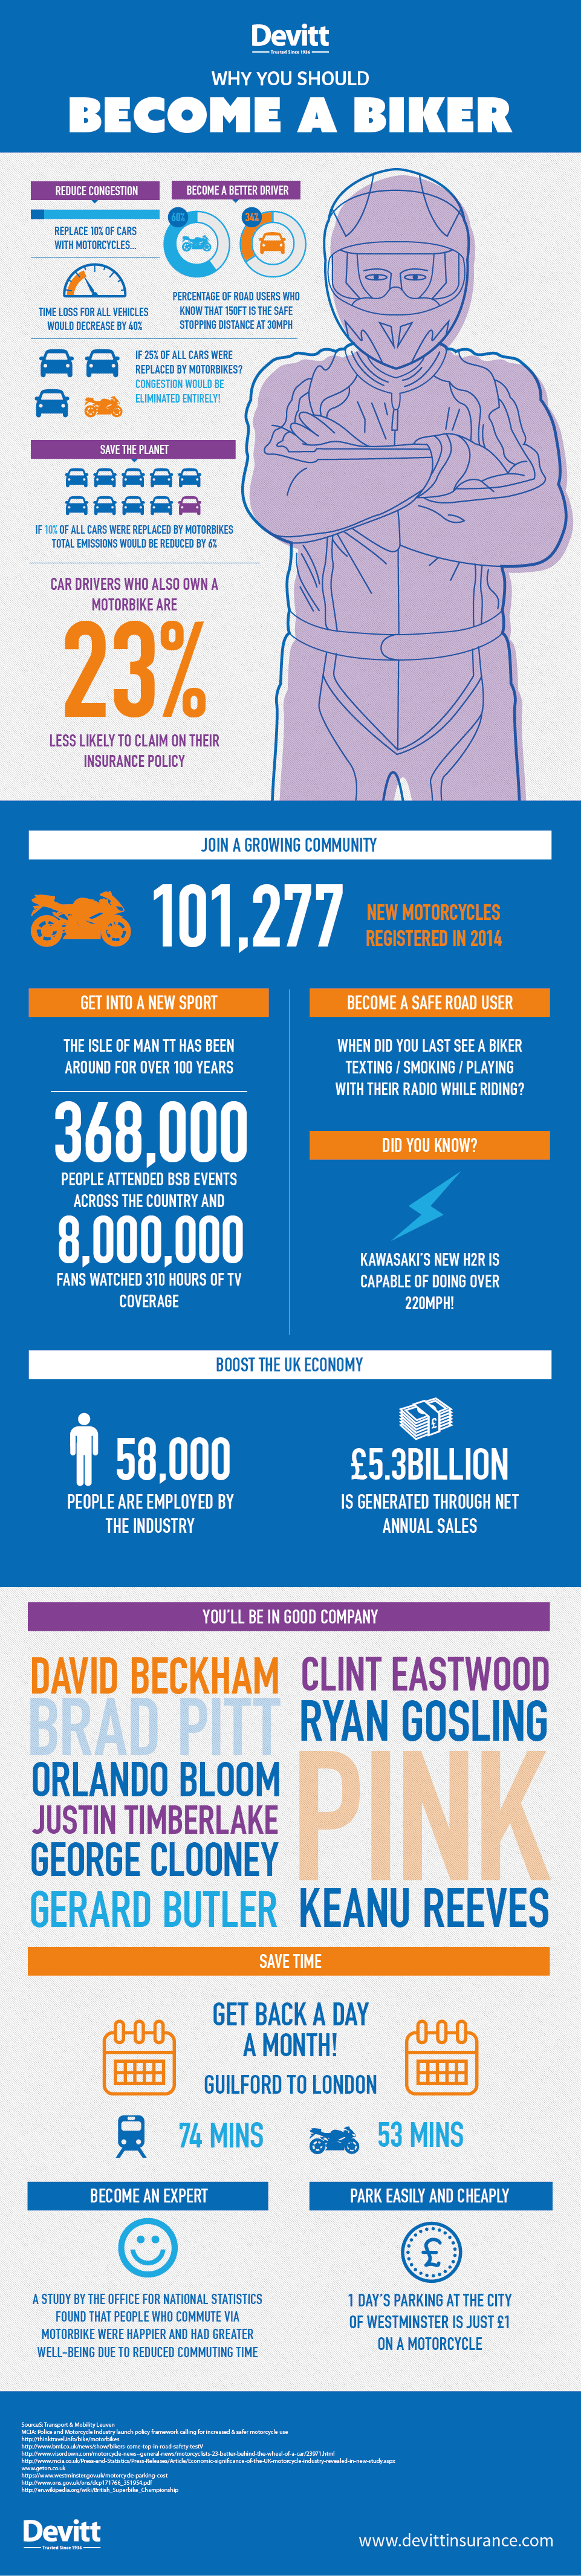 Why you should become a biker infographic